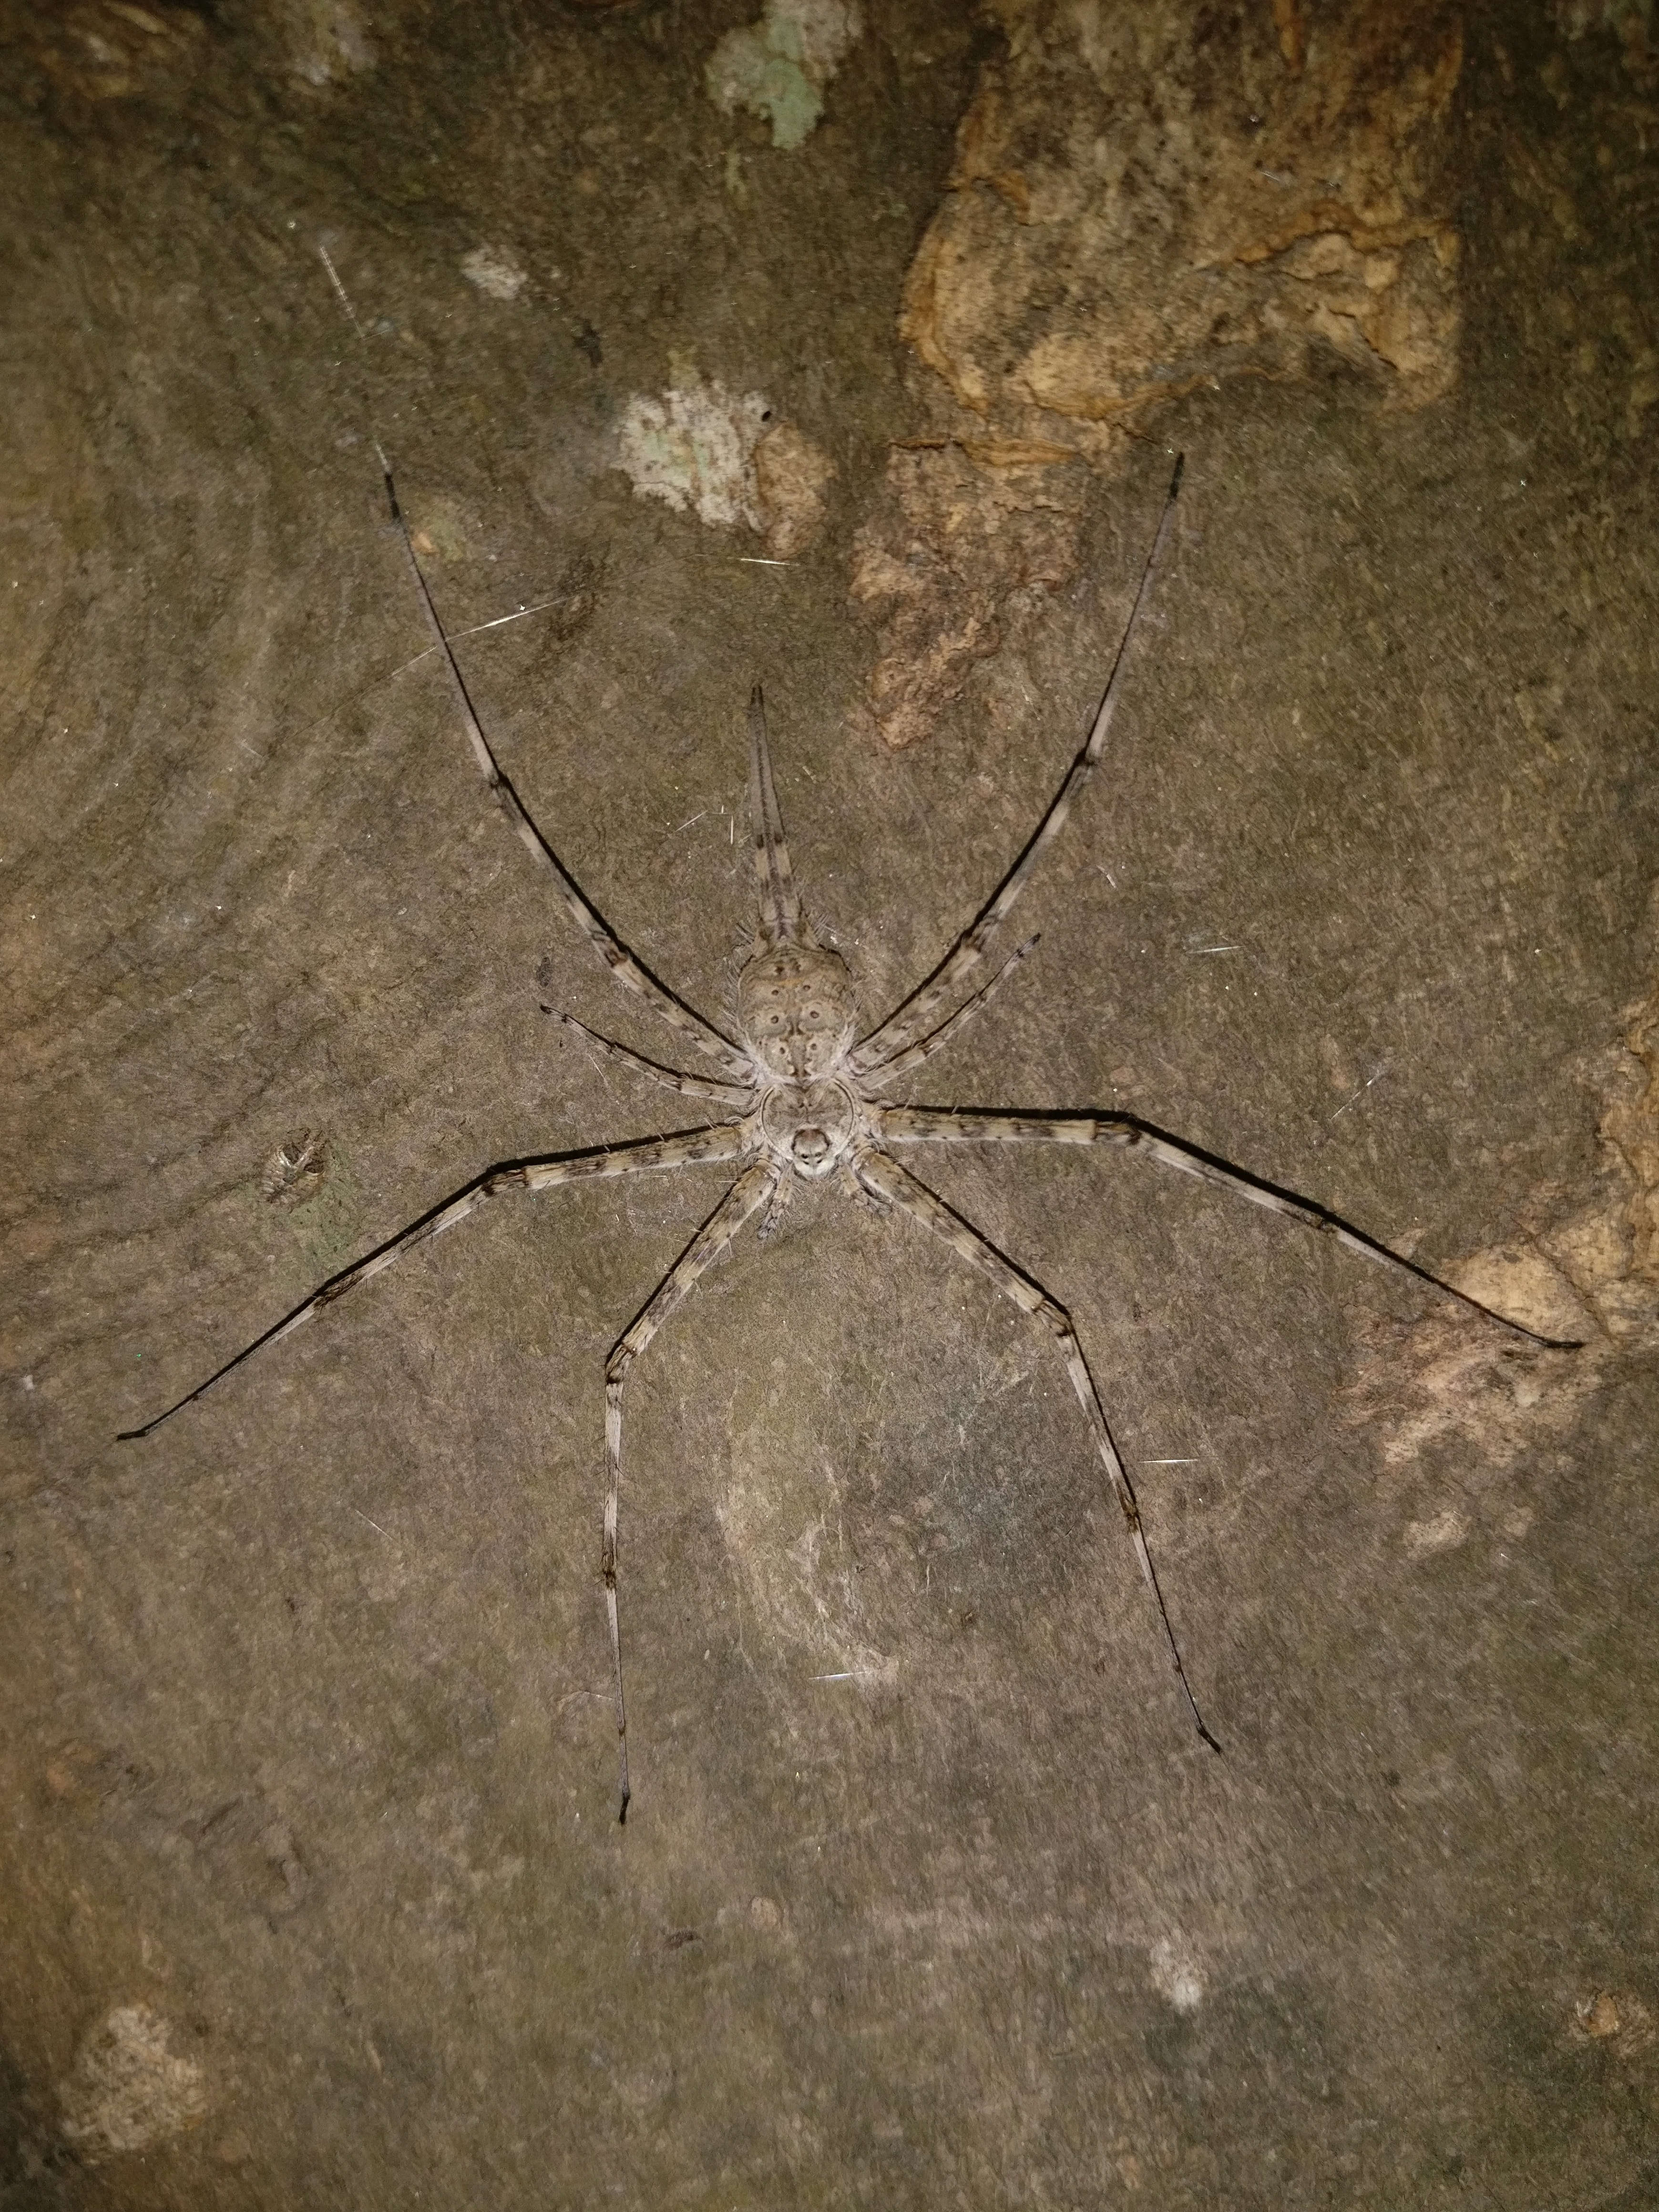 Picture of Hersiliidae (Two-tailed Spiders)